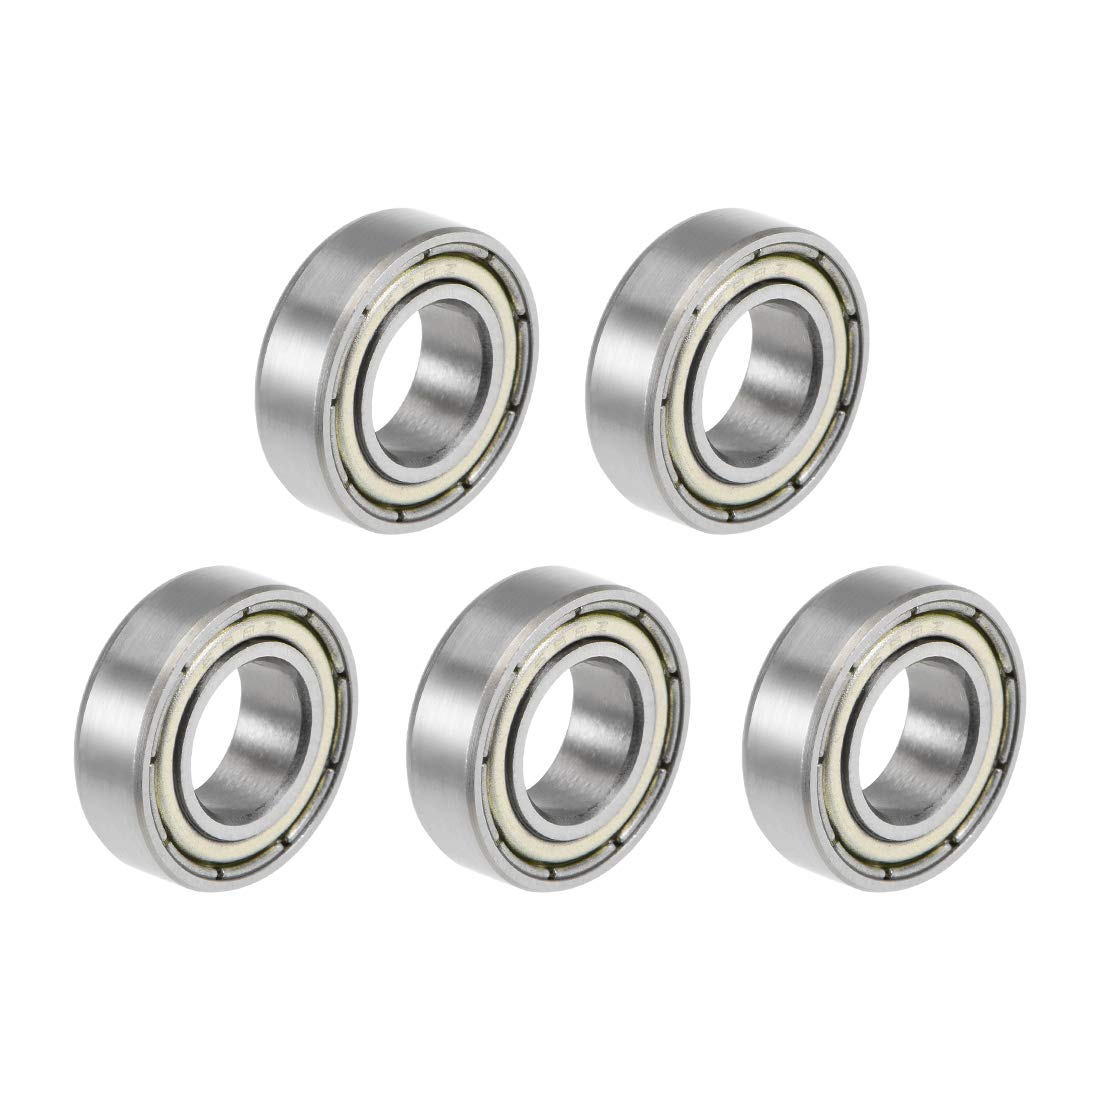 uxcell 688ZZ Deep Groove Ball Award Bearings Z2 Doubl 5mm Super beauty product restock quality top! 8mm X 16mm